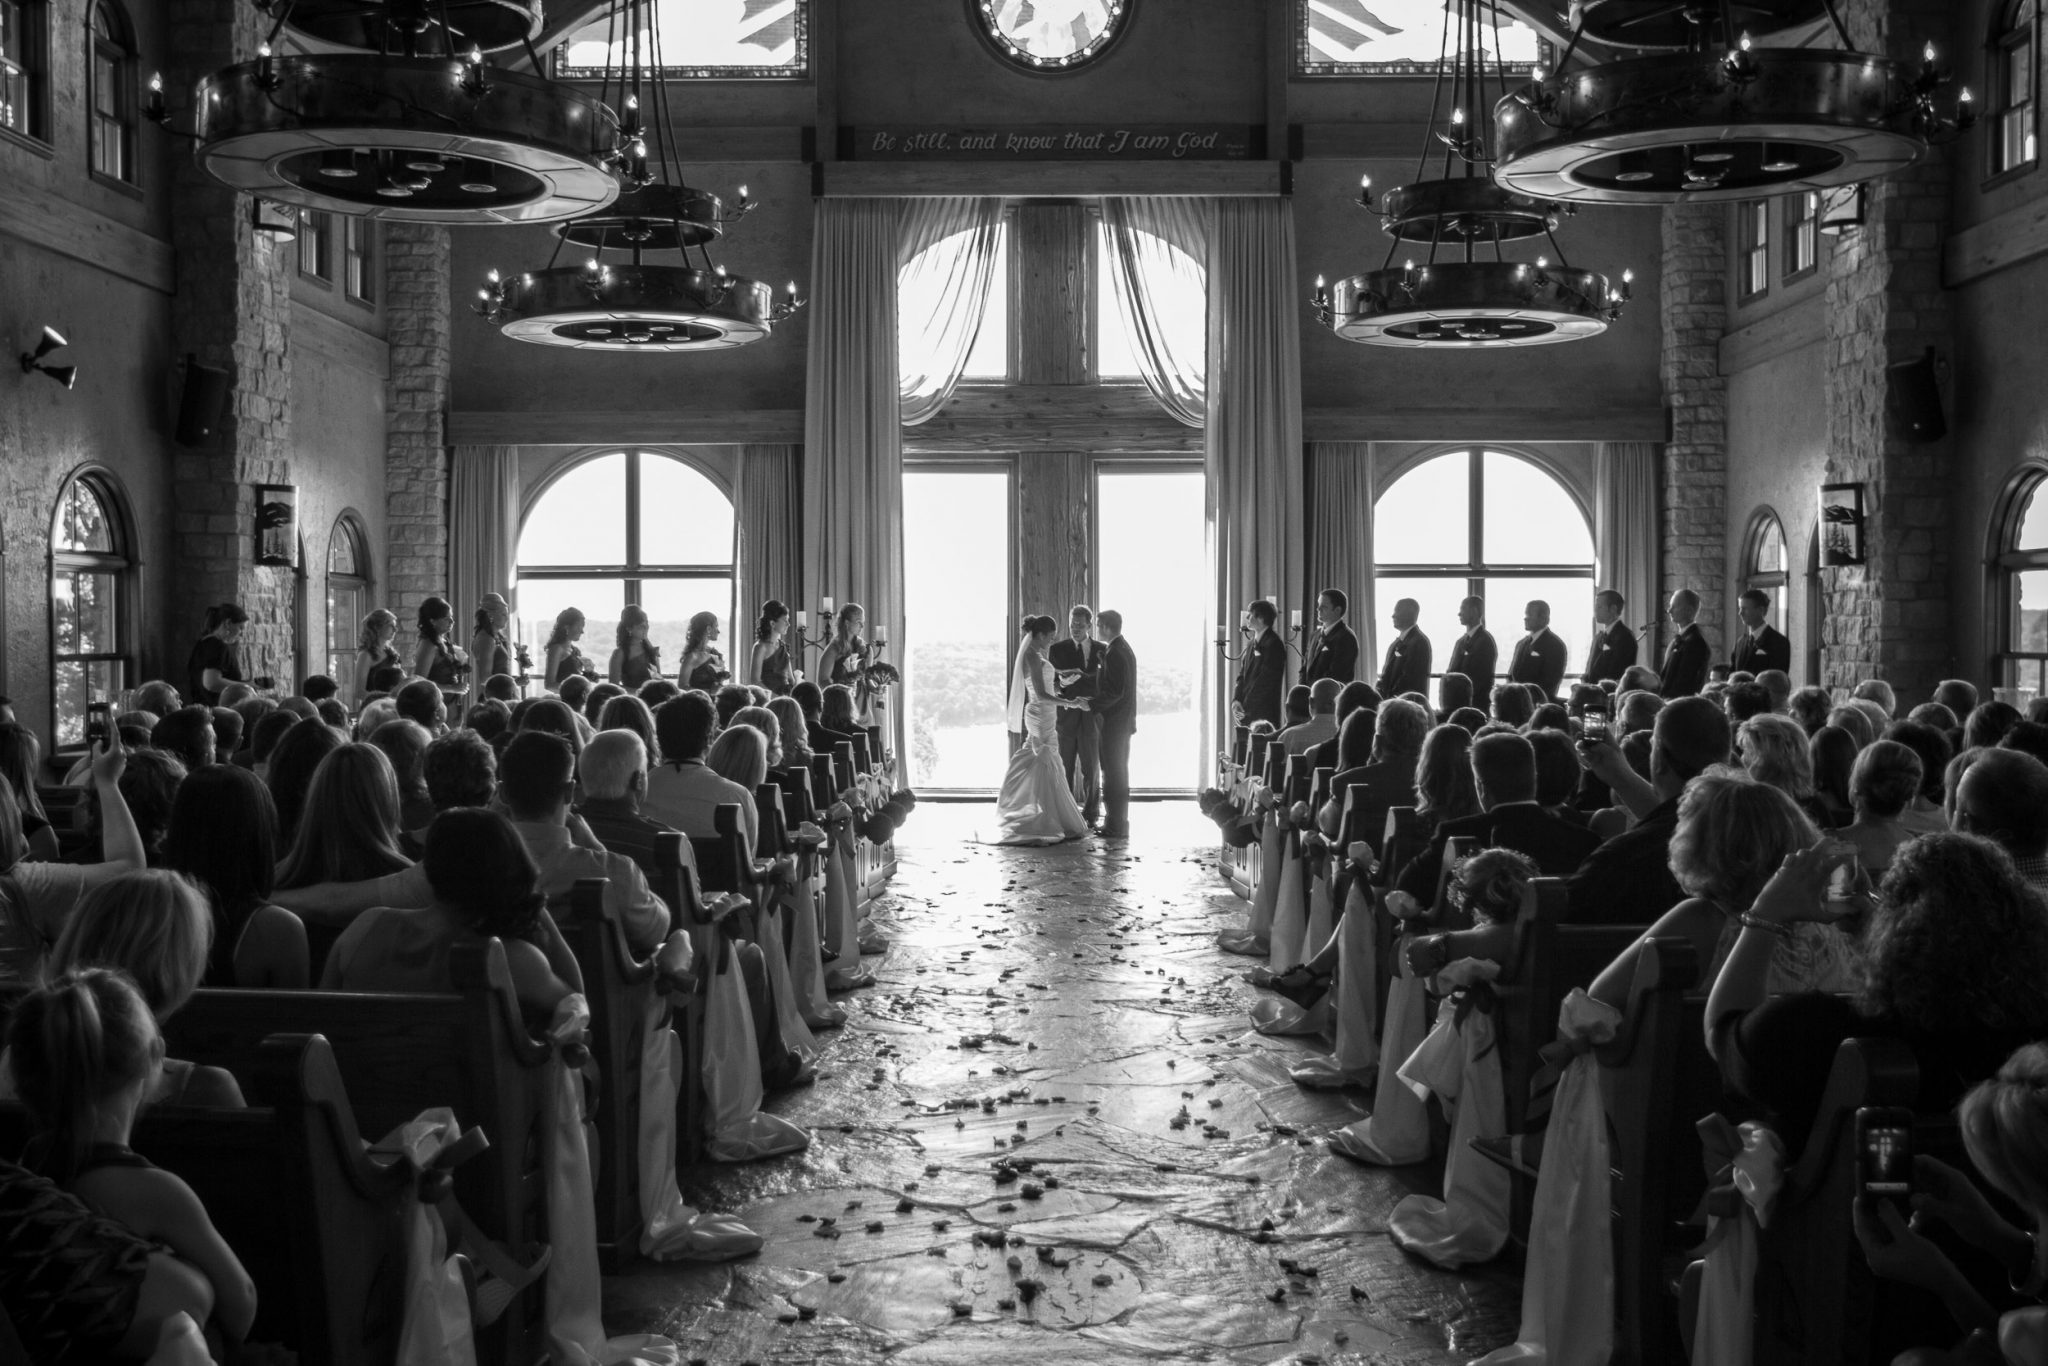 Jones wedding integrity hills branson tiffany kelley for 417 salon branson west